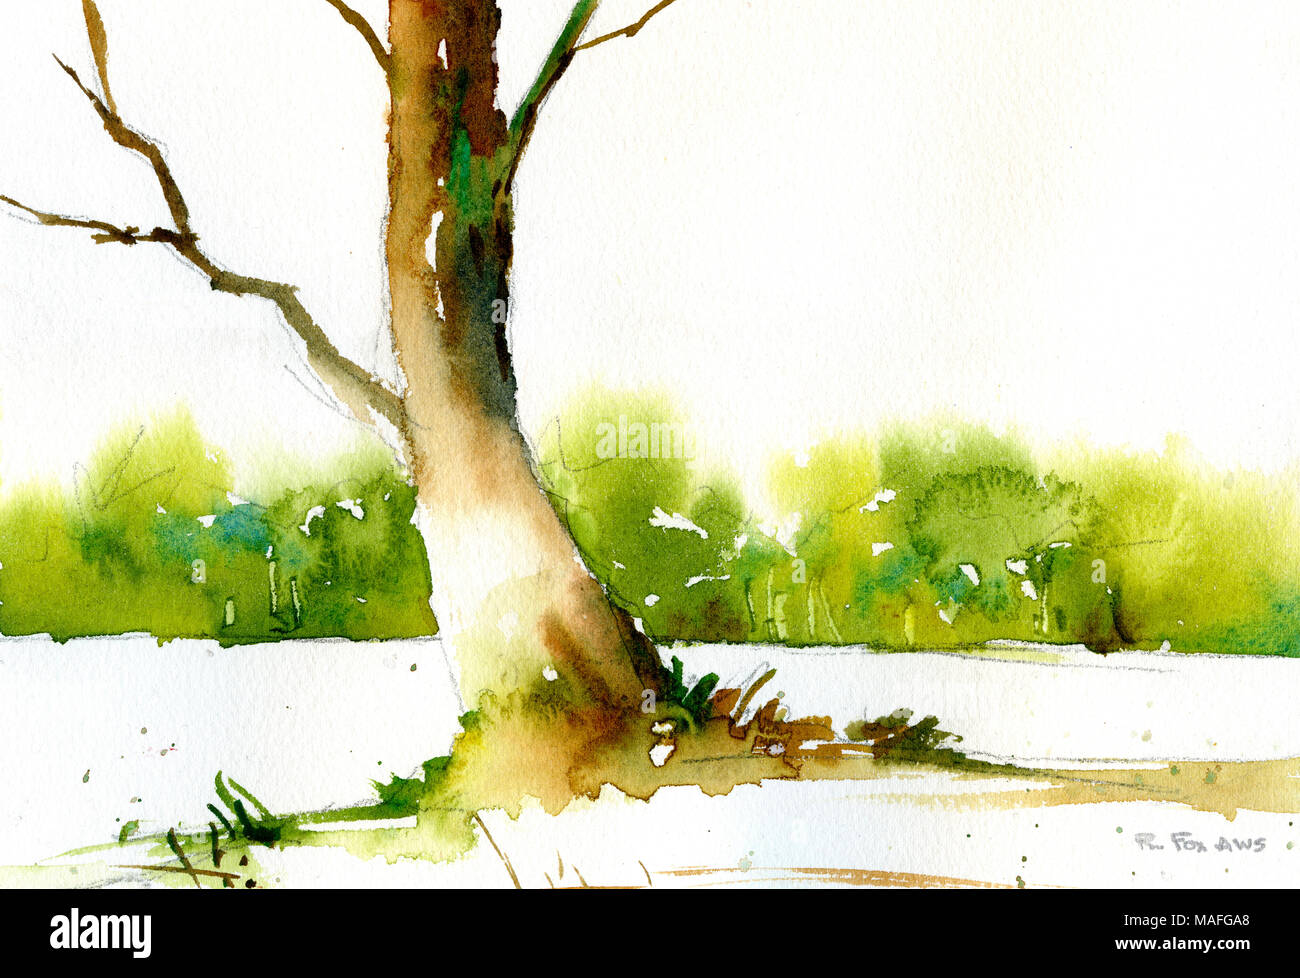 Watercolor Landscape With Trees Stock Photos & Watercolor Landscape ...